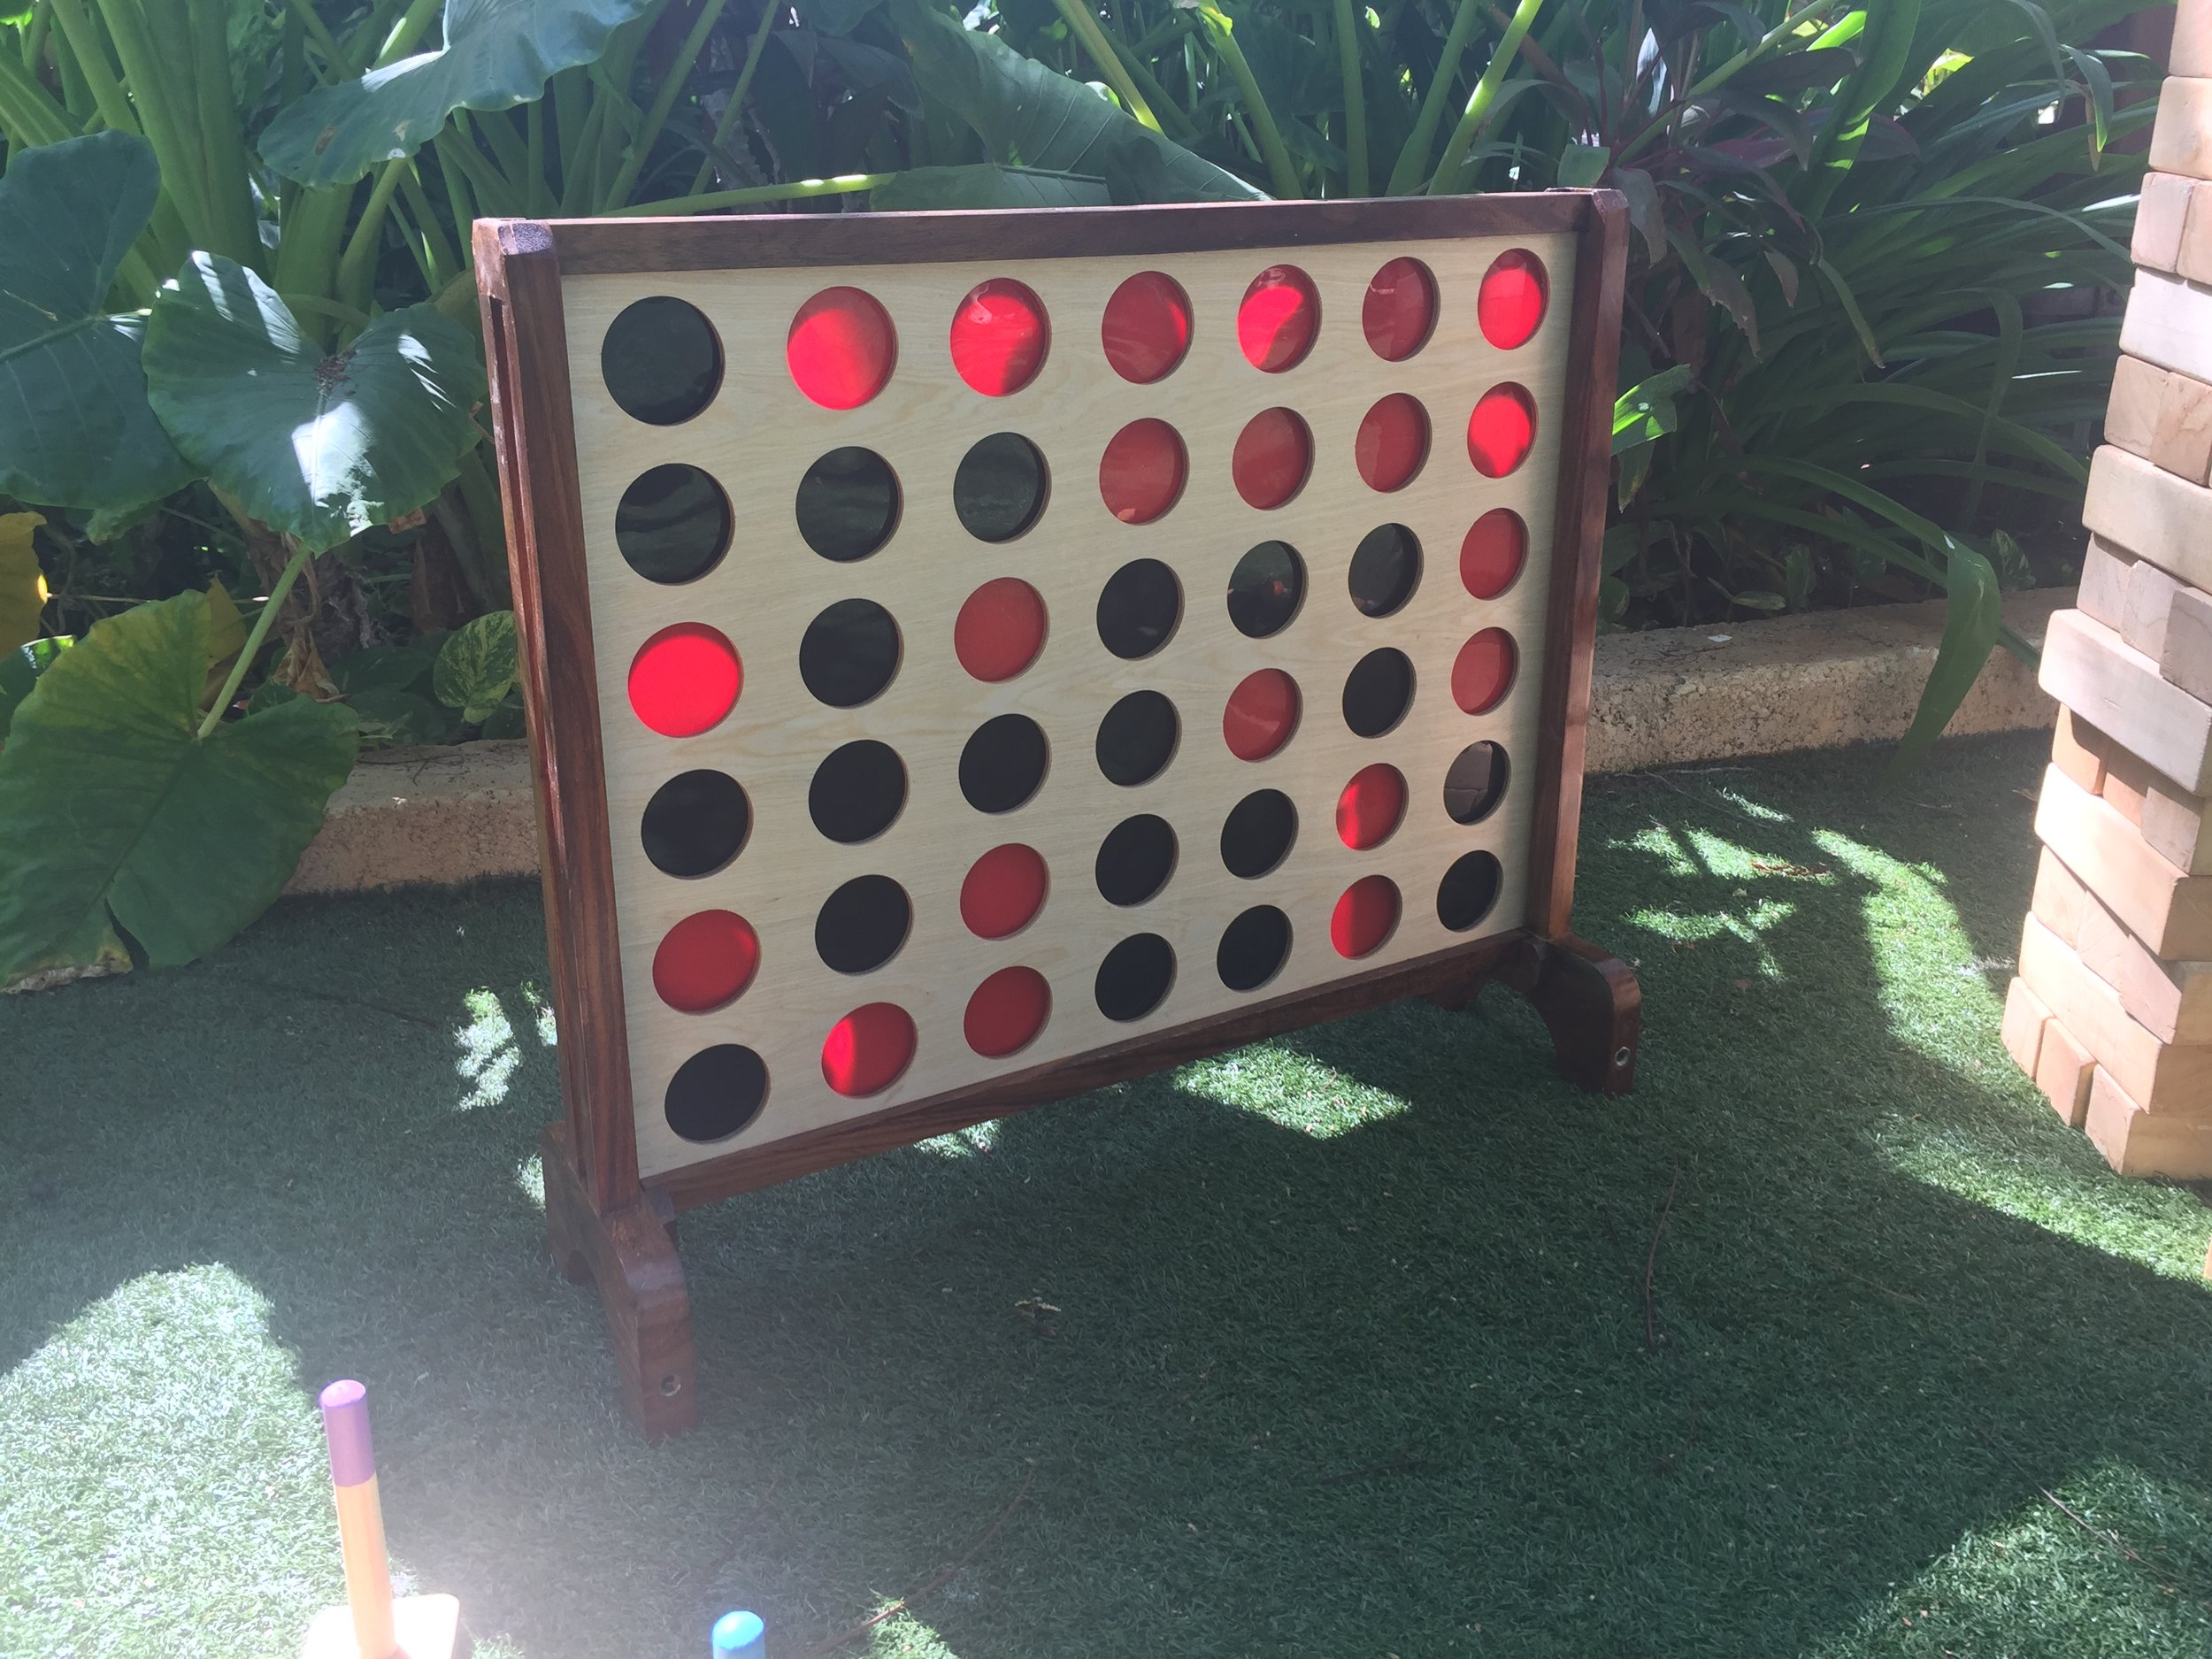 Lawn games - We have a range of lawn games that help bring people together and make for a more memorable occasion. These include stand-up versions of connect four and Jenga as well as more traditional lawn games like croquet.